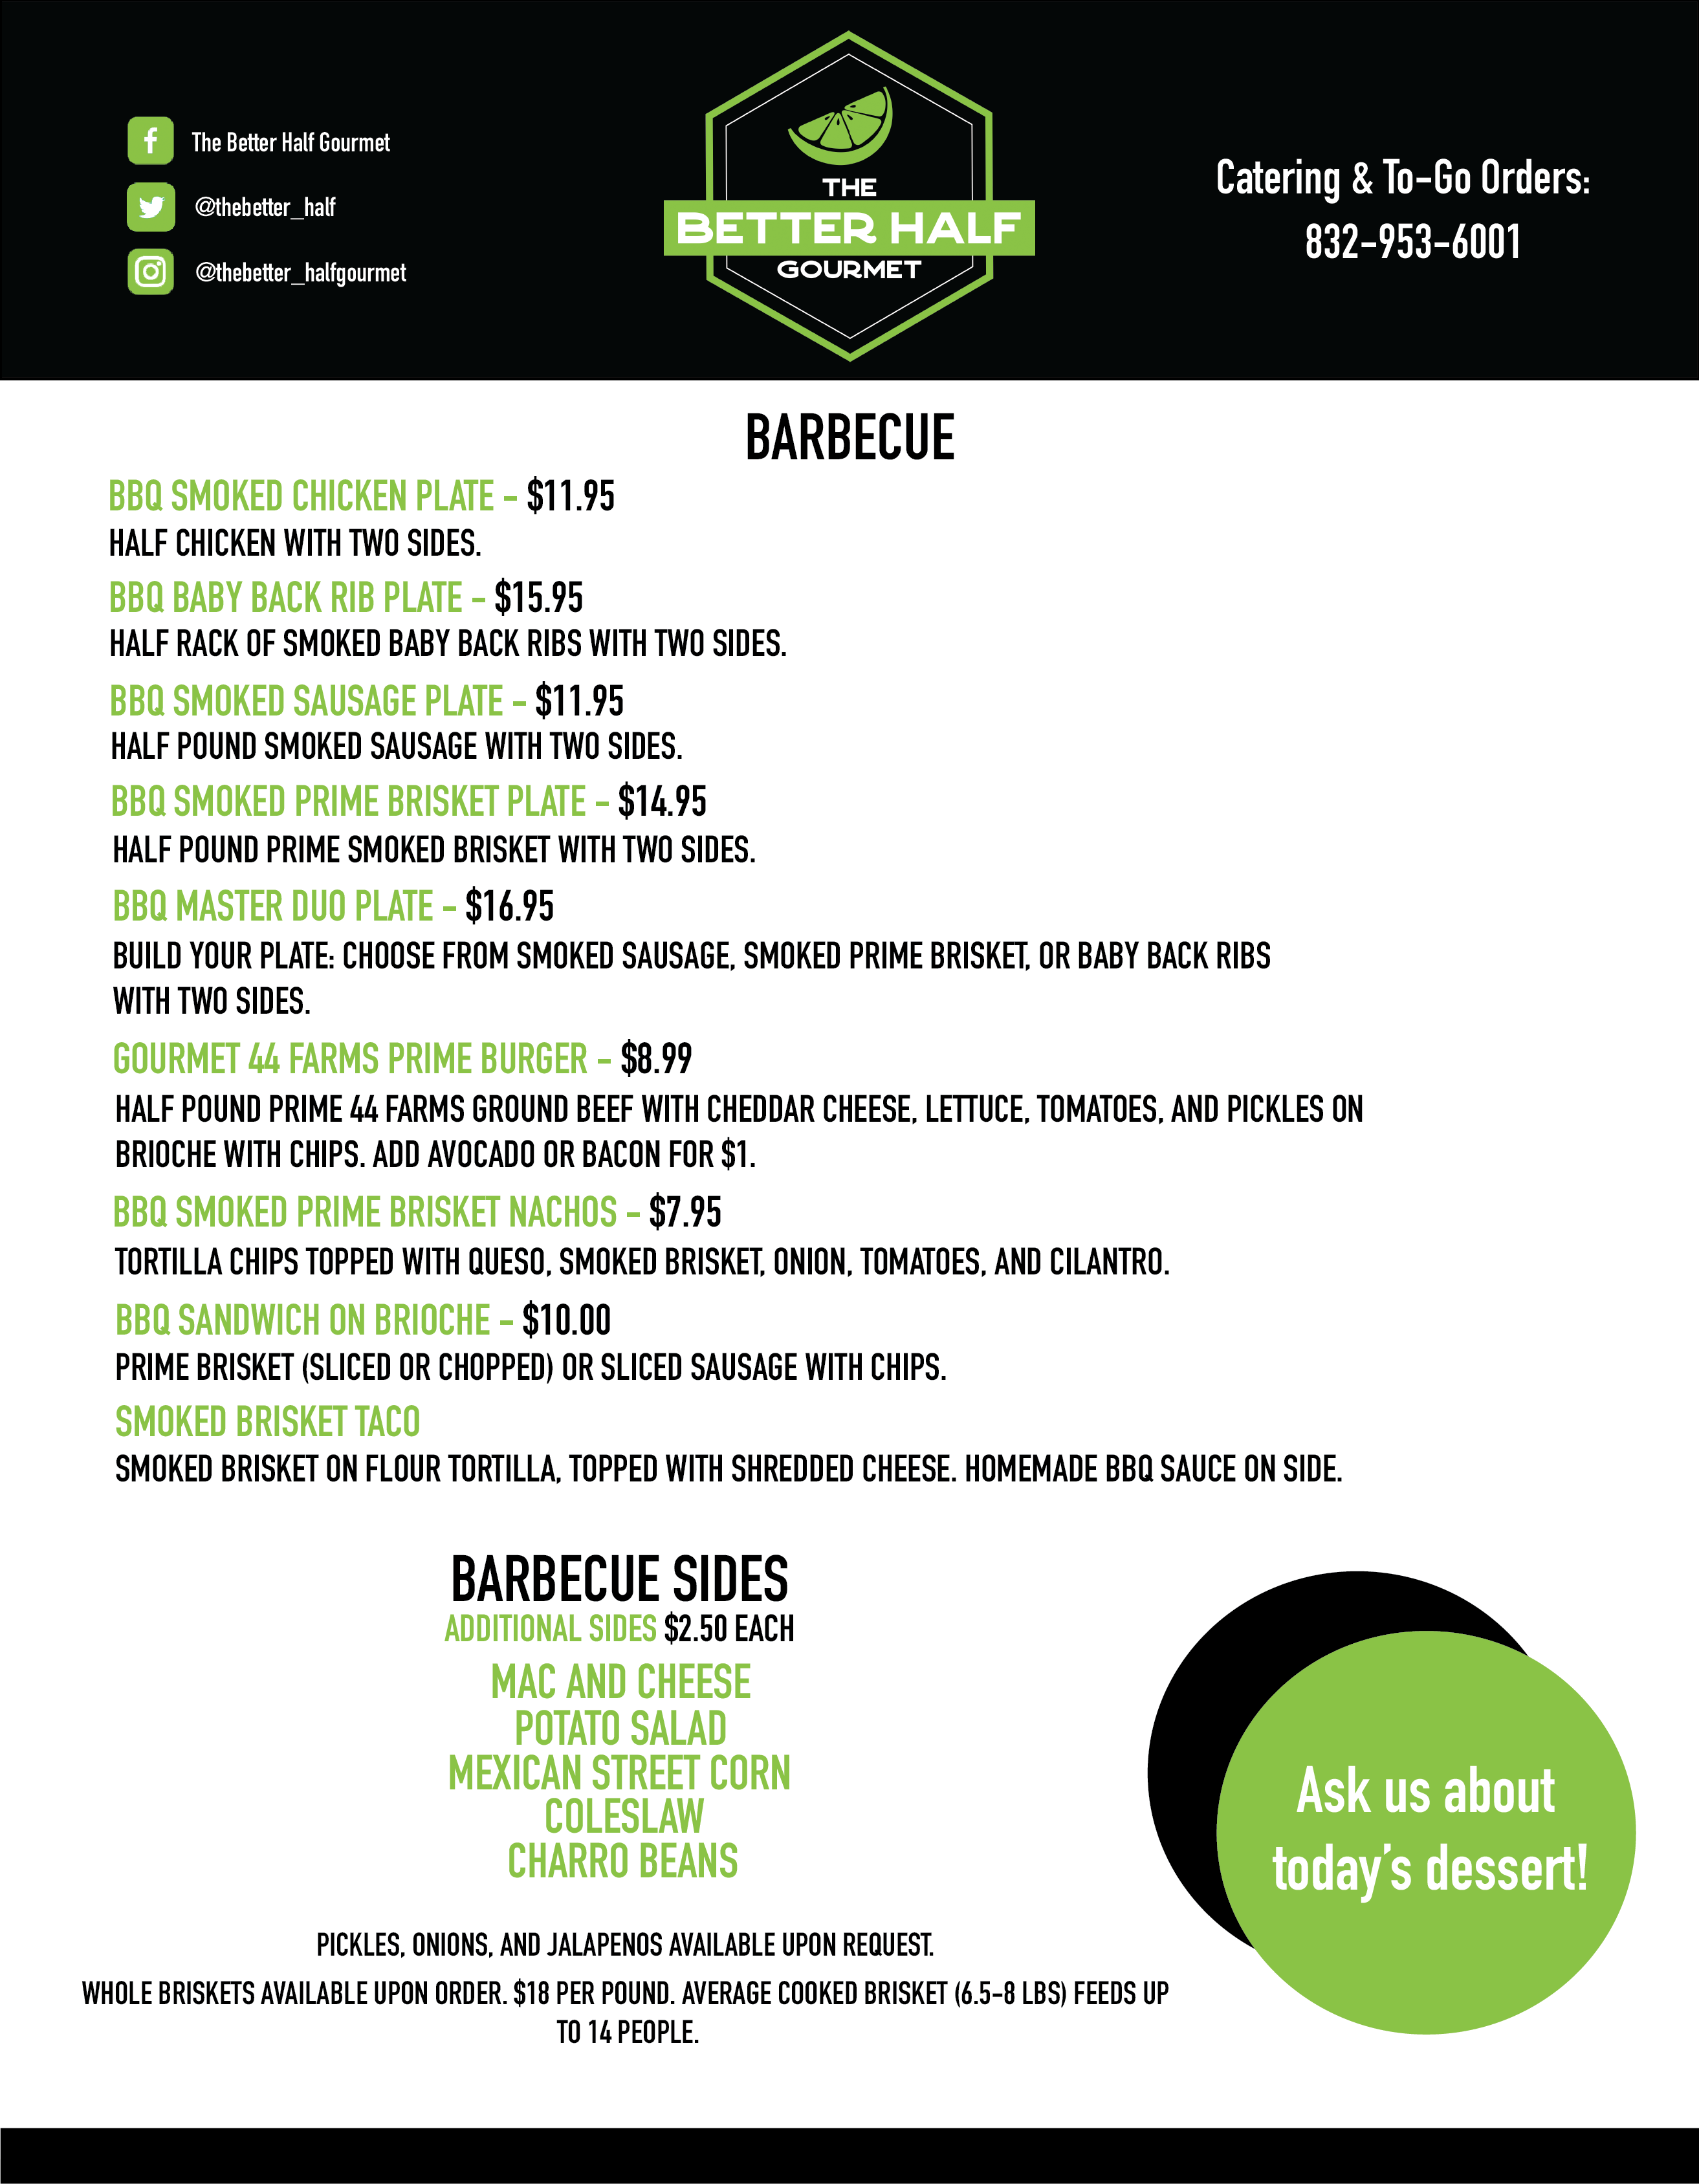 Food Truck Menu - TBHG - June7-02